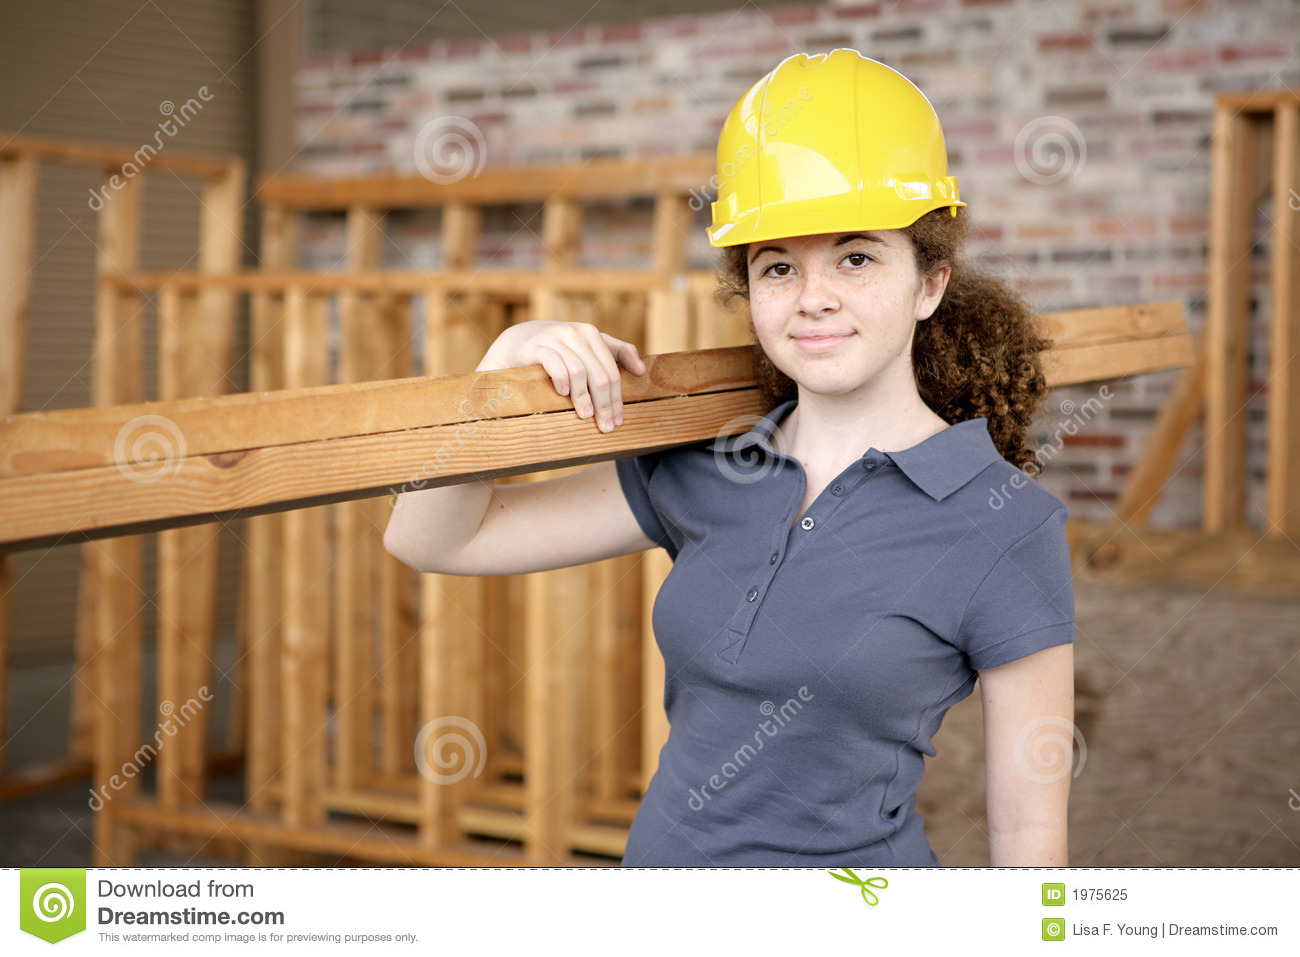 Download Female Construction Apprentice Stock Image - Image of plank, person: 1975625